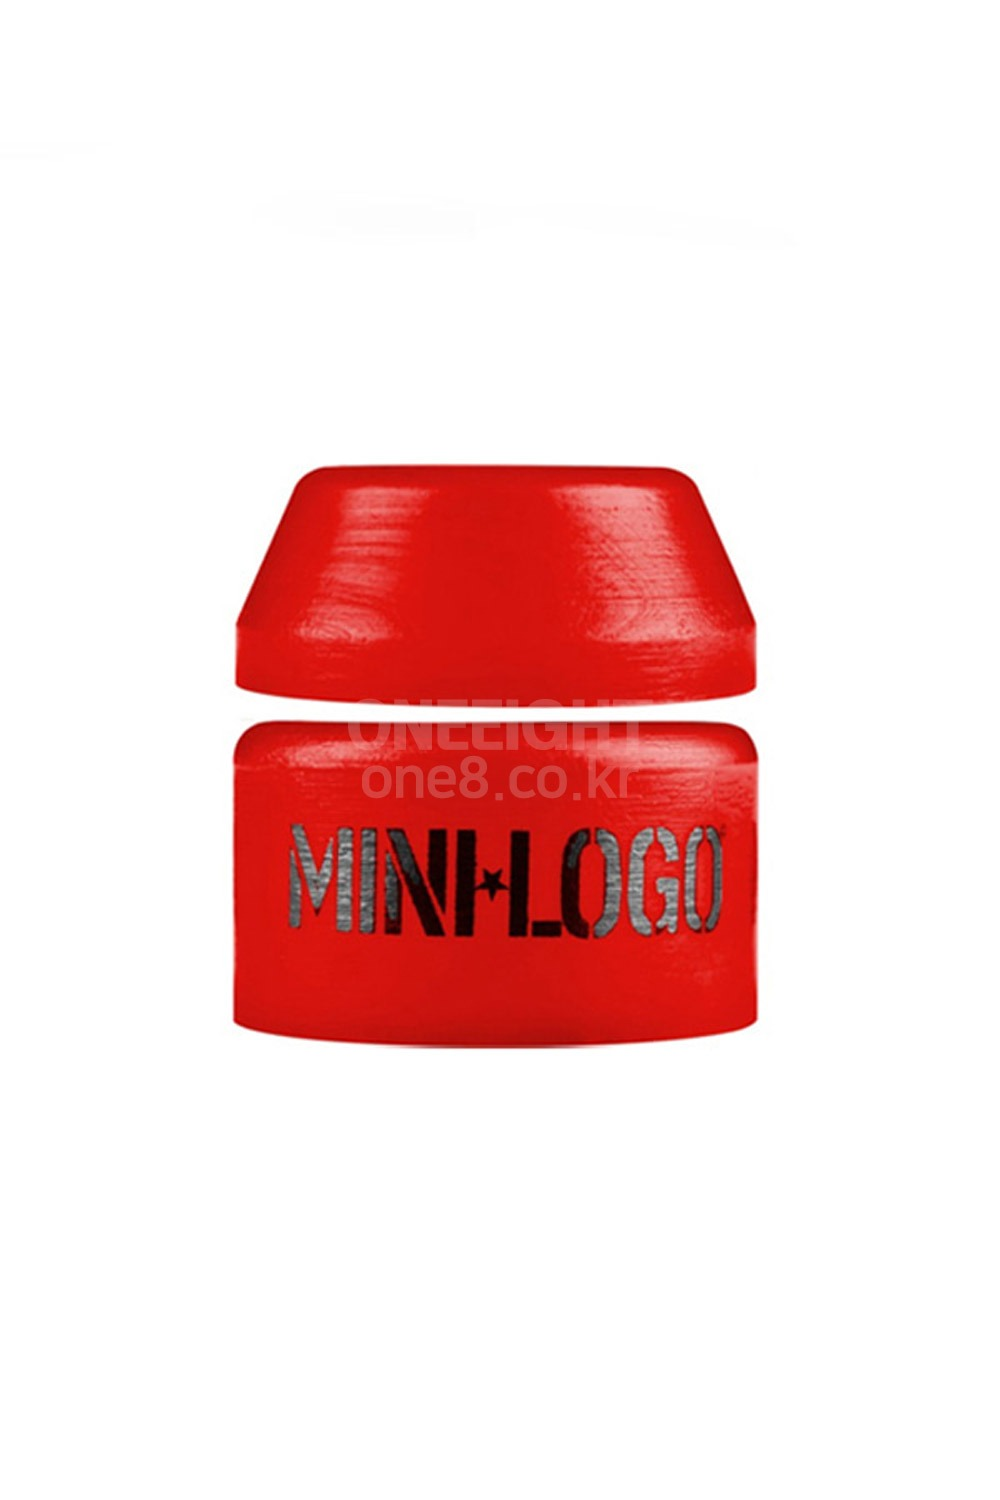 미니로고 스케이트 부싱 XMD806RE / MINILOGO HARD BUSHINGS SINGLE 100A RED [1SET]